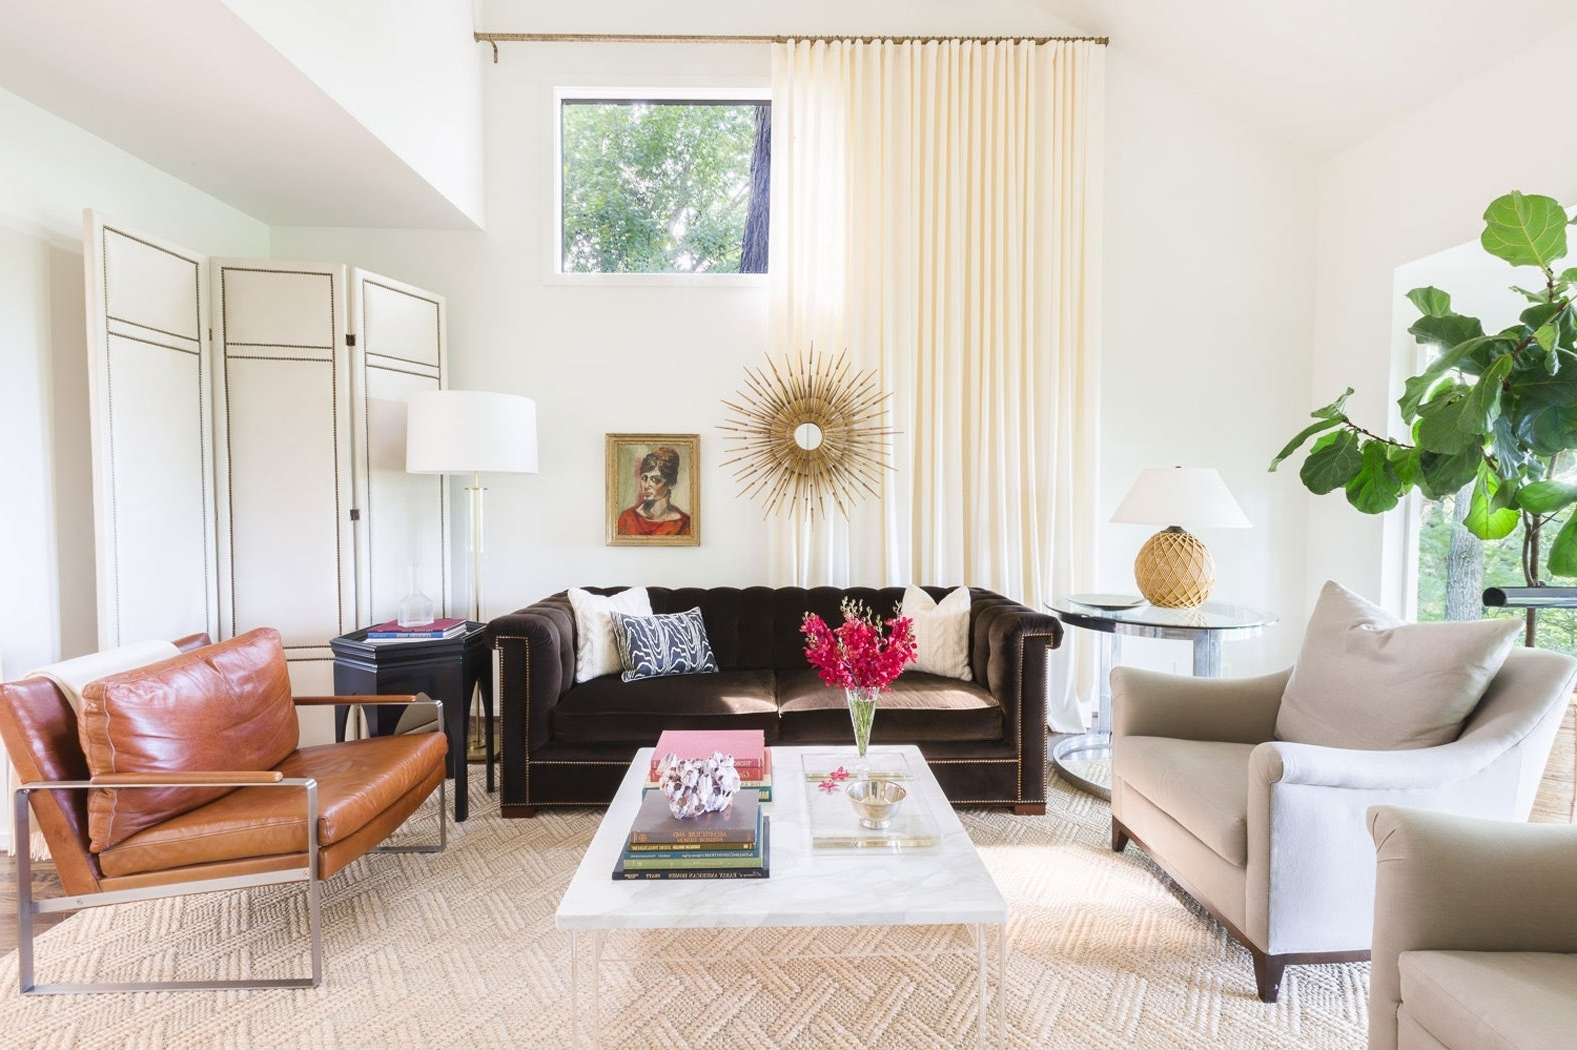 An Amazing Before And After Living Room Renovation Architectural Digest Small Living Room